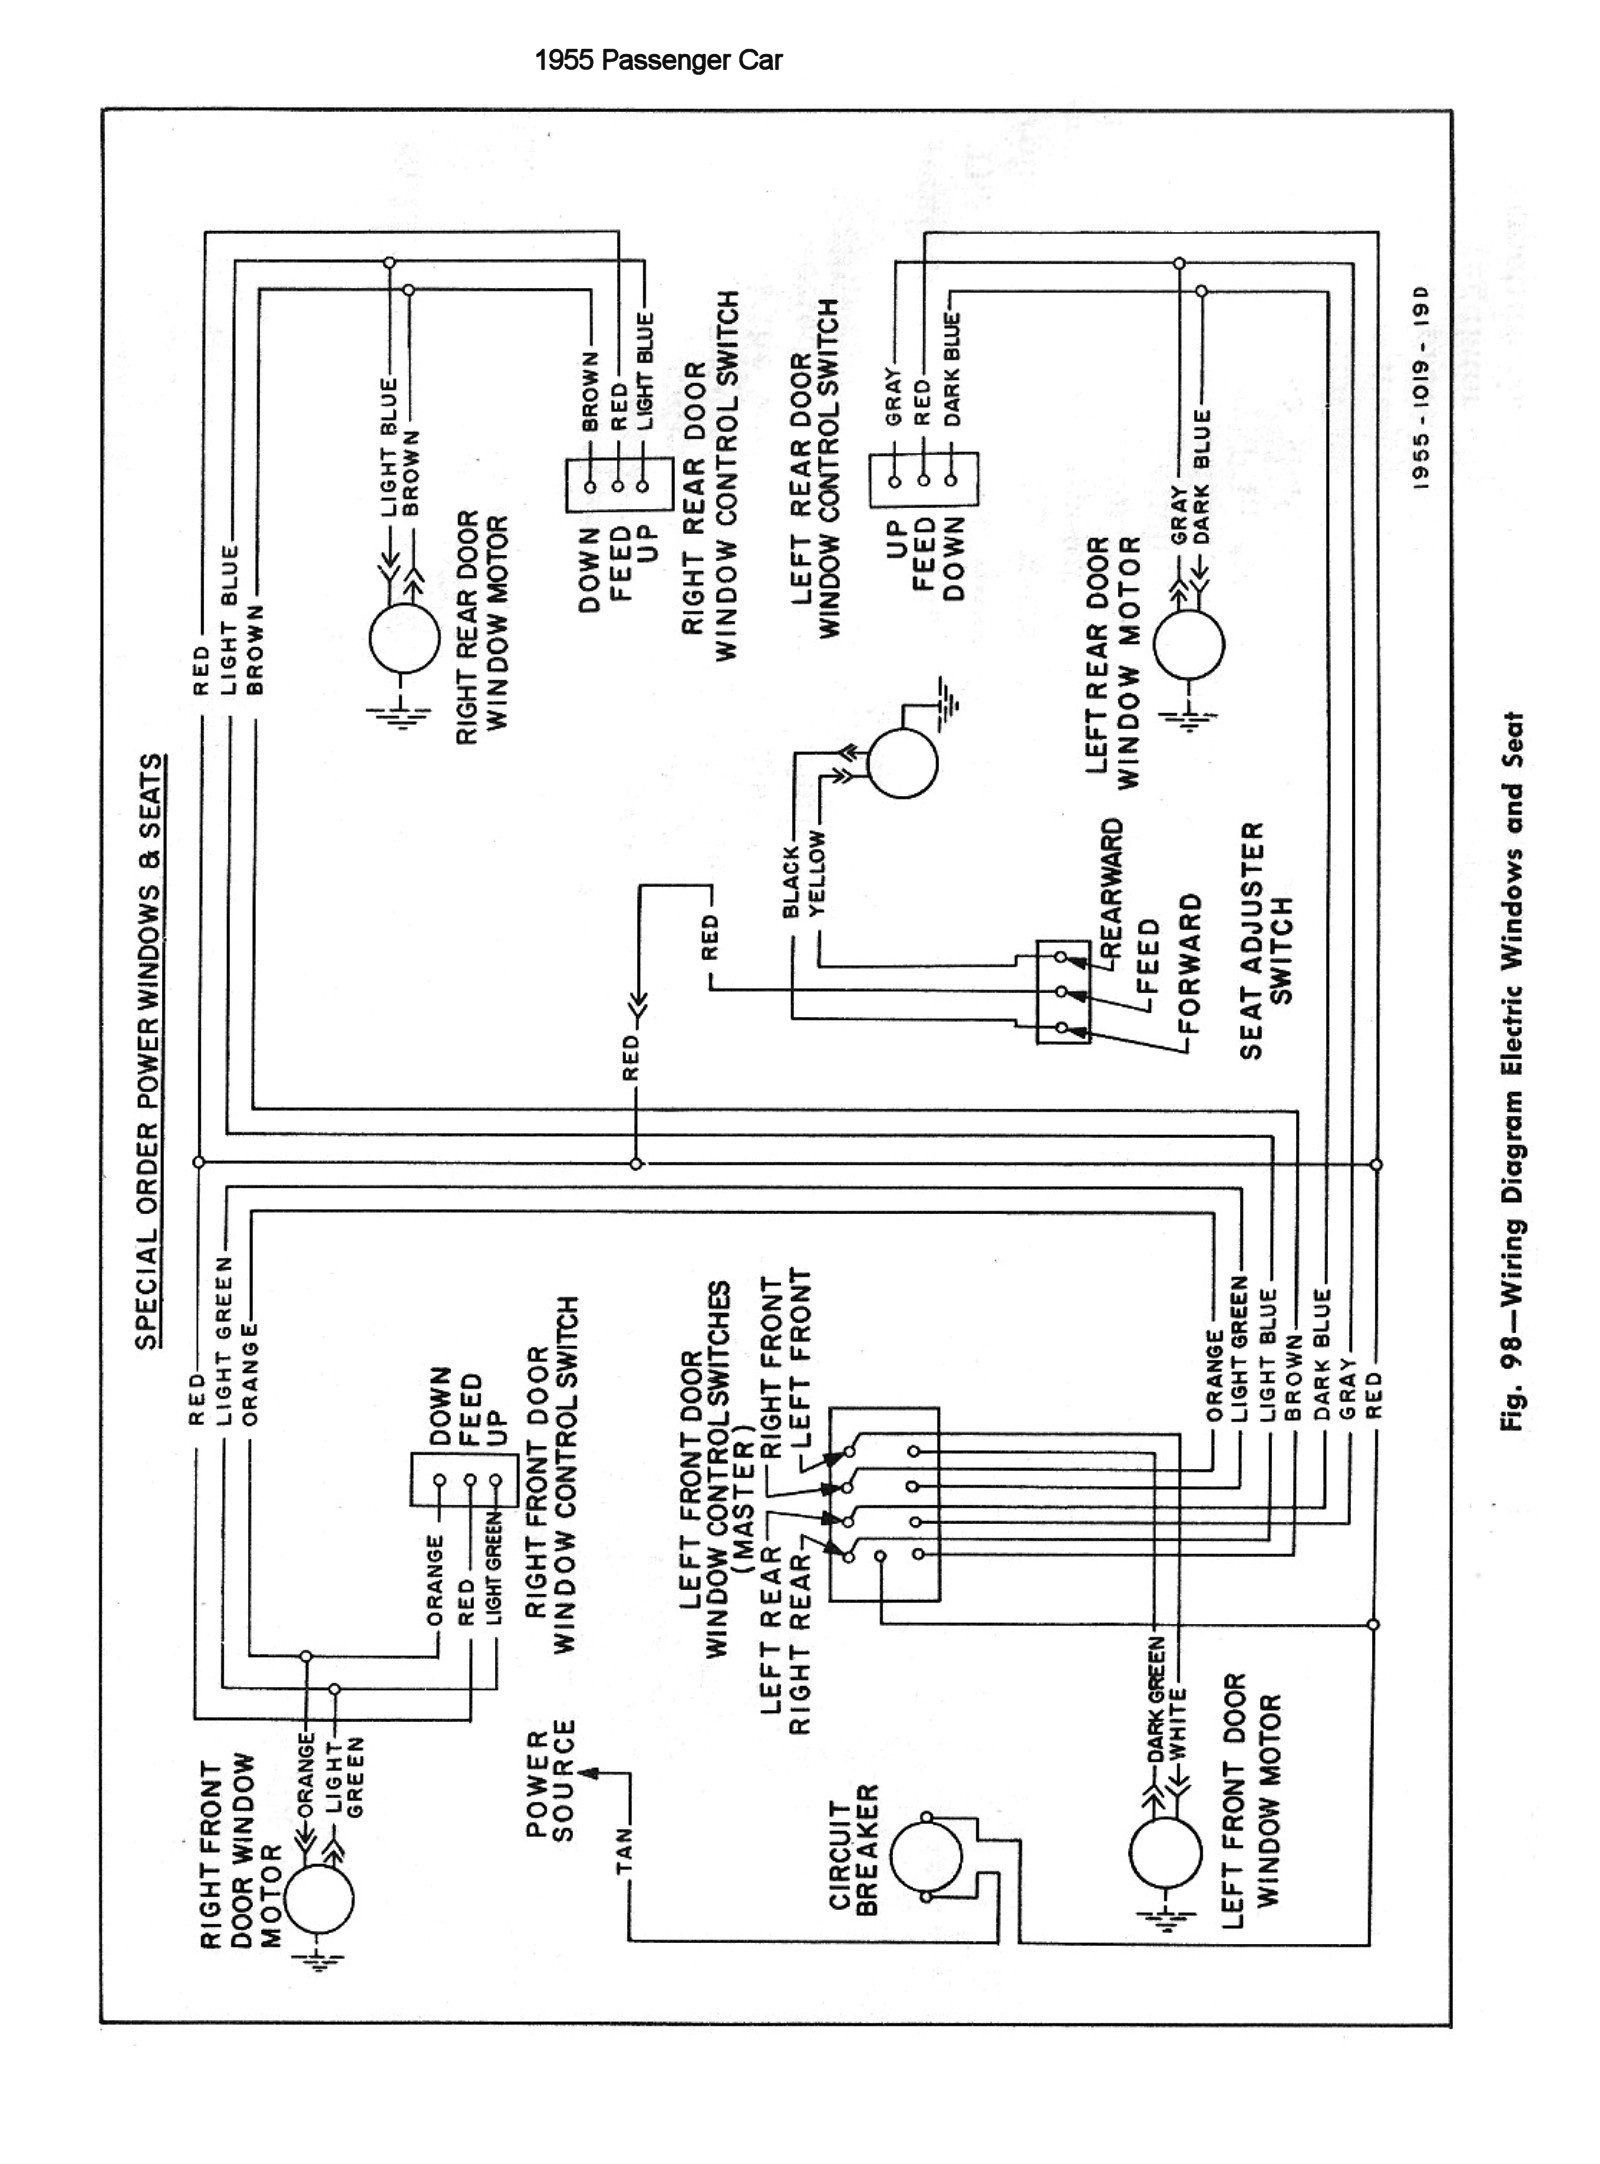 1955 chevy turn signal wiring diagram | wiringdiagram.org ... gm turn signal diagram